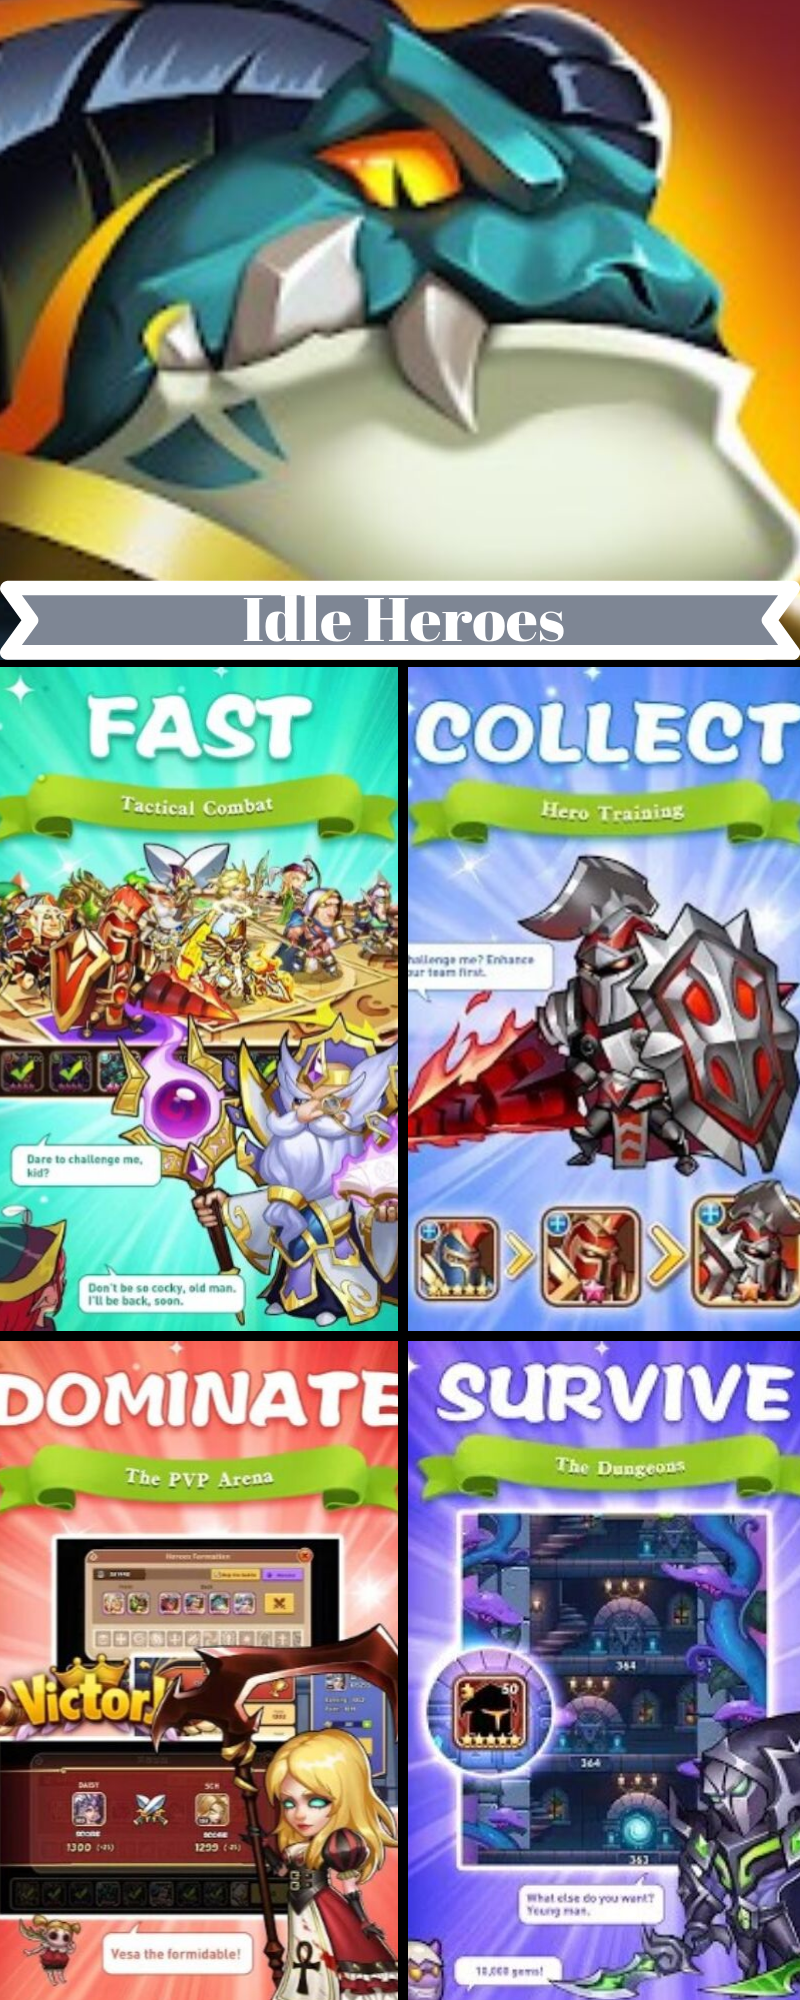 Idle Heroes Mod Apk Download for Android/Phone/Tablet [2019]